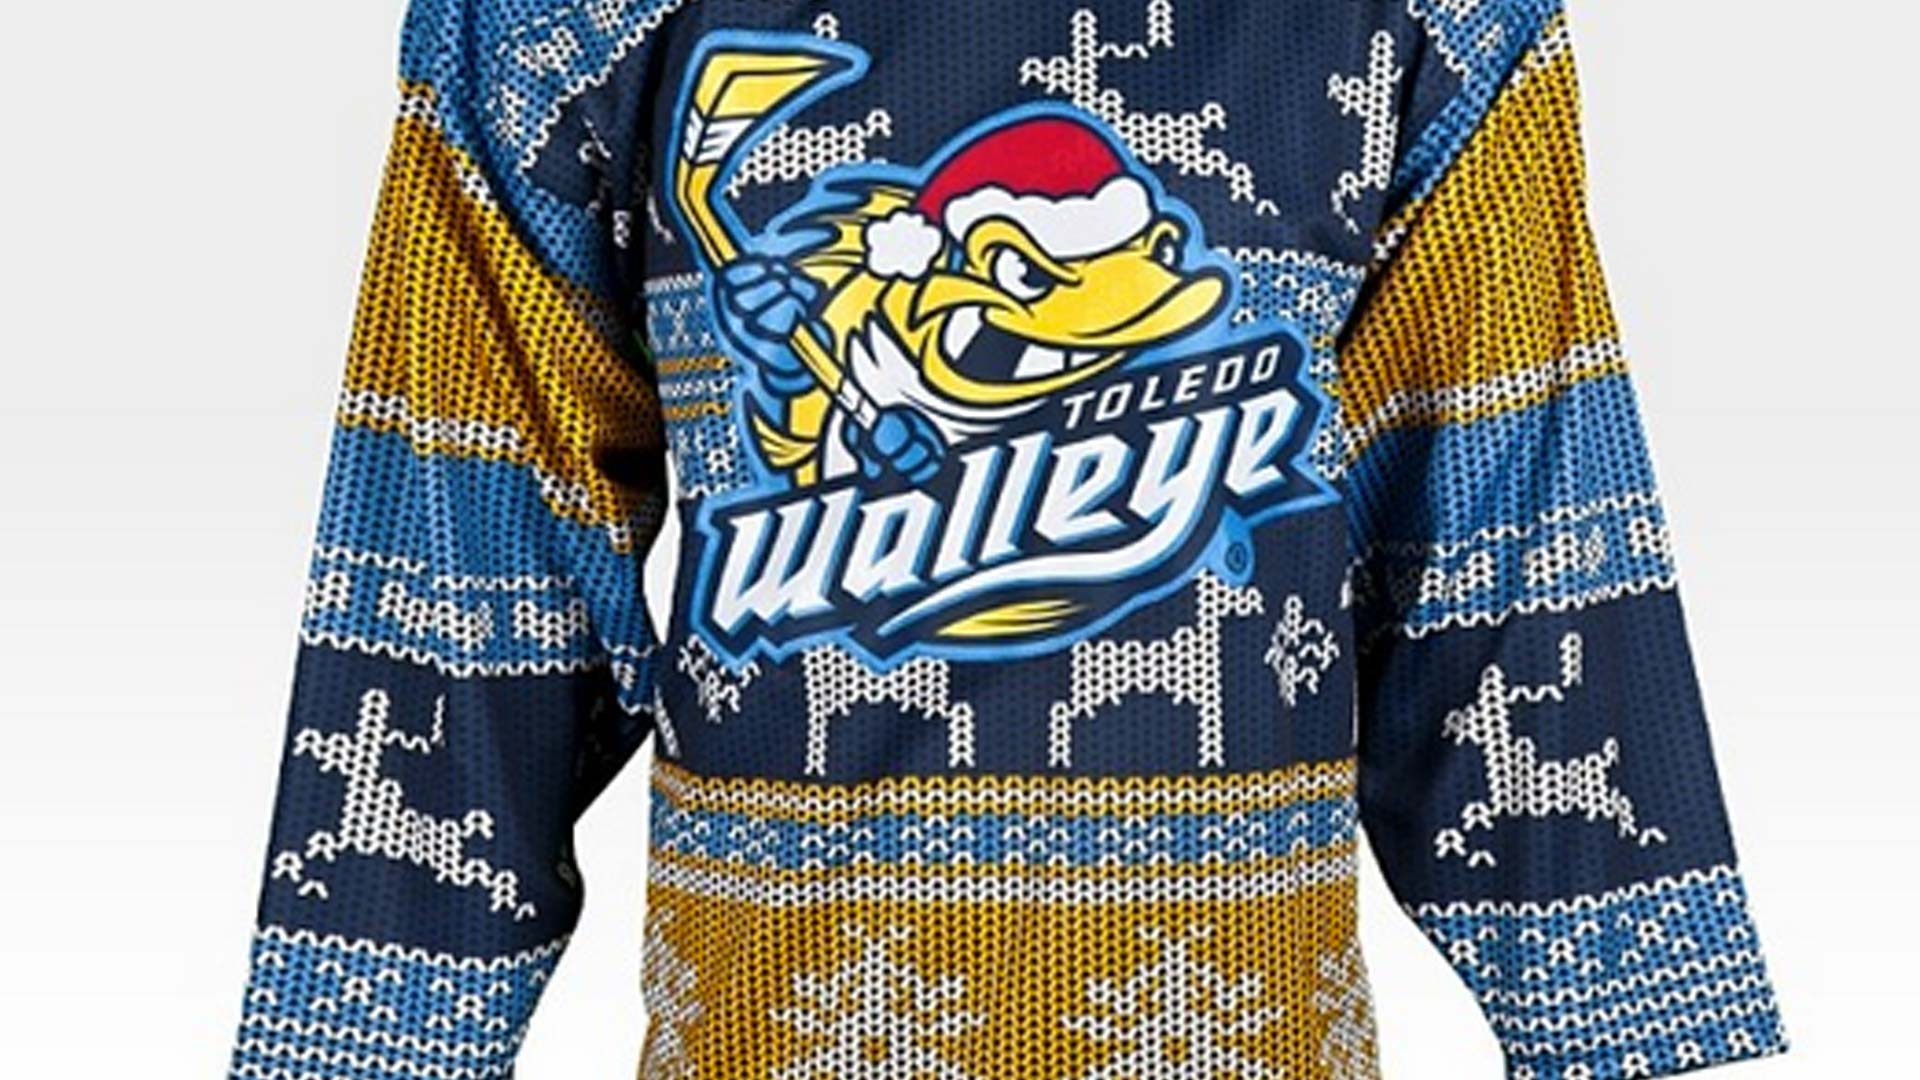 Toledo-Walleye-ugly-sweater-uniform-121913-Instagram-FTR